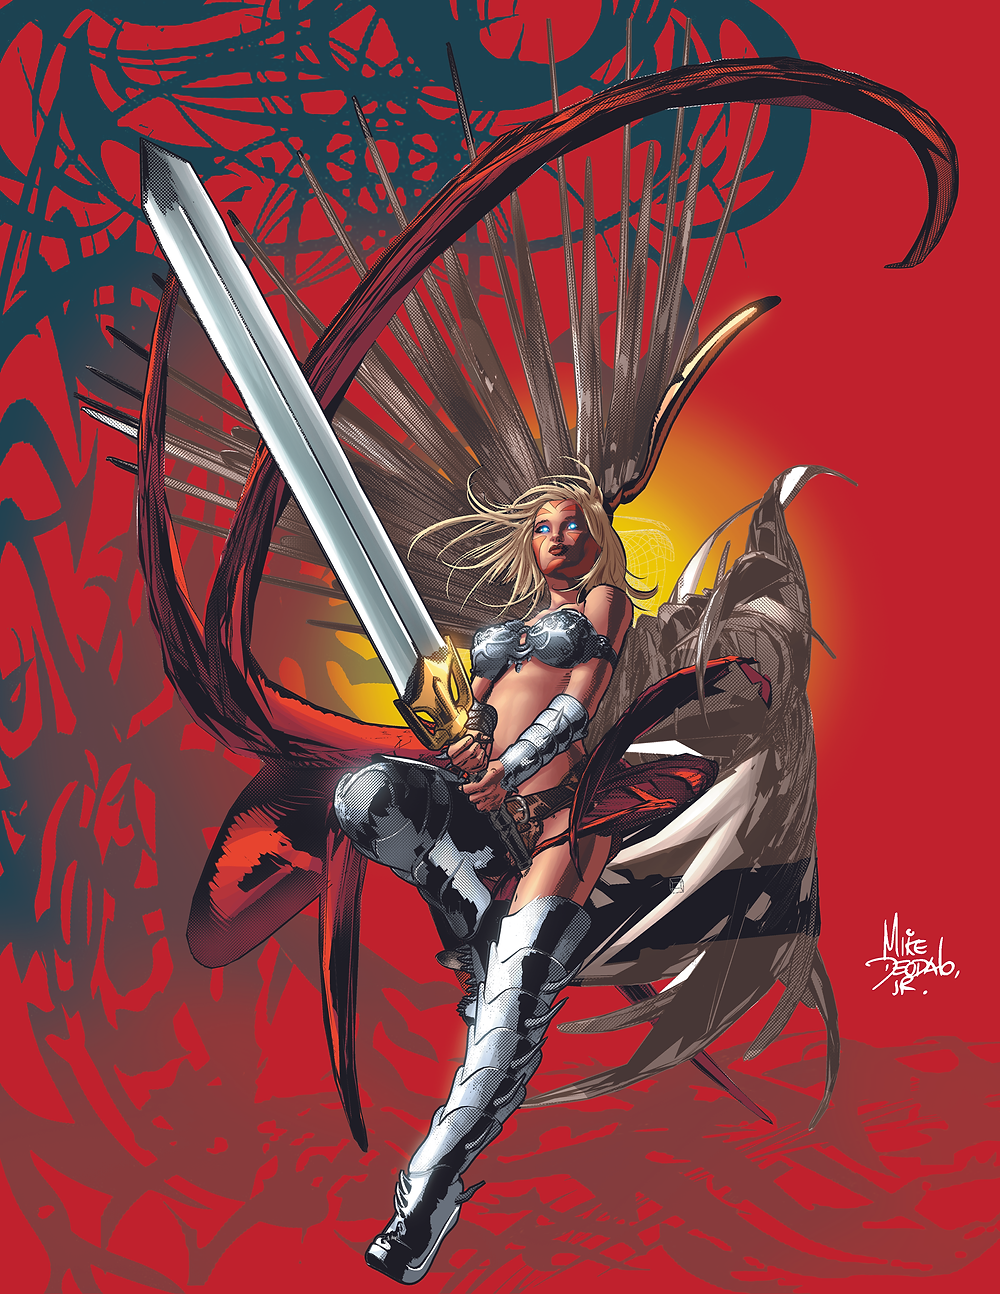 Mike Deodato's Bad Girls  The Angel God's armies can only rely on the Angel of War to defeat Satan. Colors by Marco Lesko.  After his smash hit Wonder Woman run in 1994, Mike Deodato became the most known Bad Girls artist of his time, bringing power and sensuality to an army of dangerous beauties like Lady Death, Glory, Vampirella, Xena, Batgirl, Elektra and many others. Now he is bring them back to set the NFT world on fire!